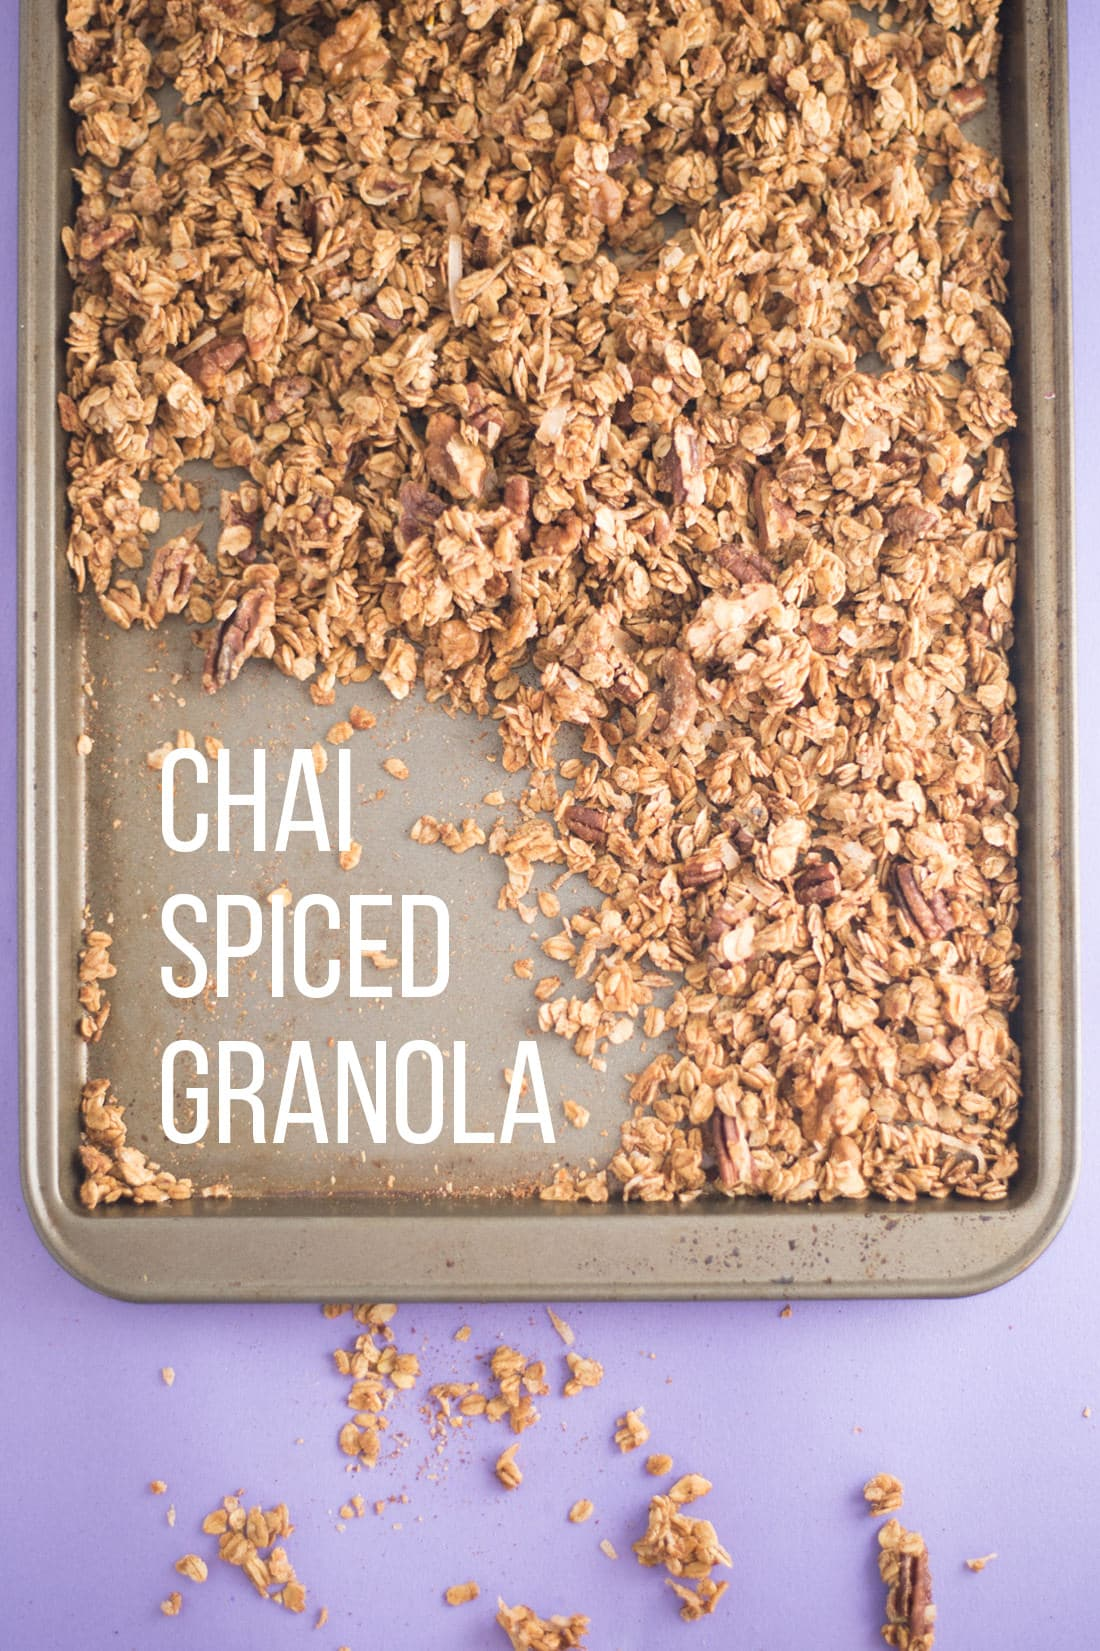 baking sheet full of granola on purple background